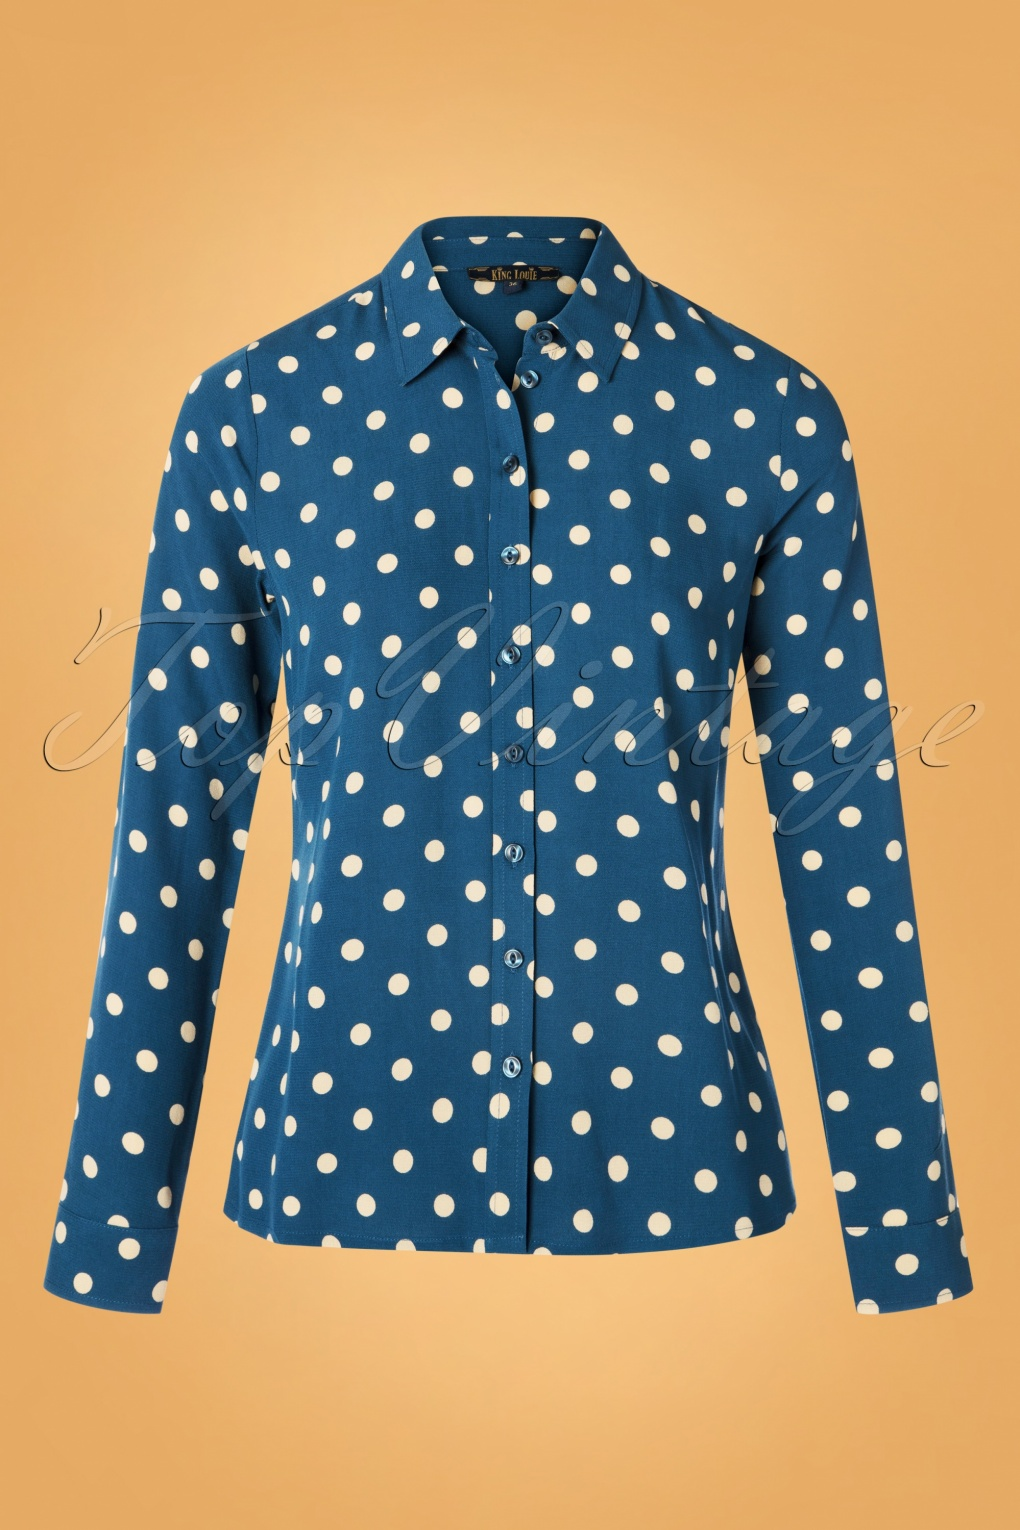 60s Shirts, T-shirt, Blouses | 70s Shirts, Tops, Vests 70s Rosie Polkadot Blouse in Autumn Blue £72.78 AT vintagedancer.com